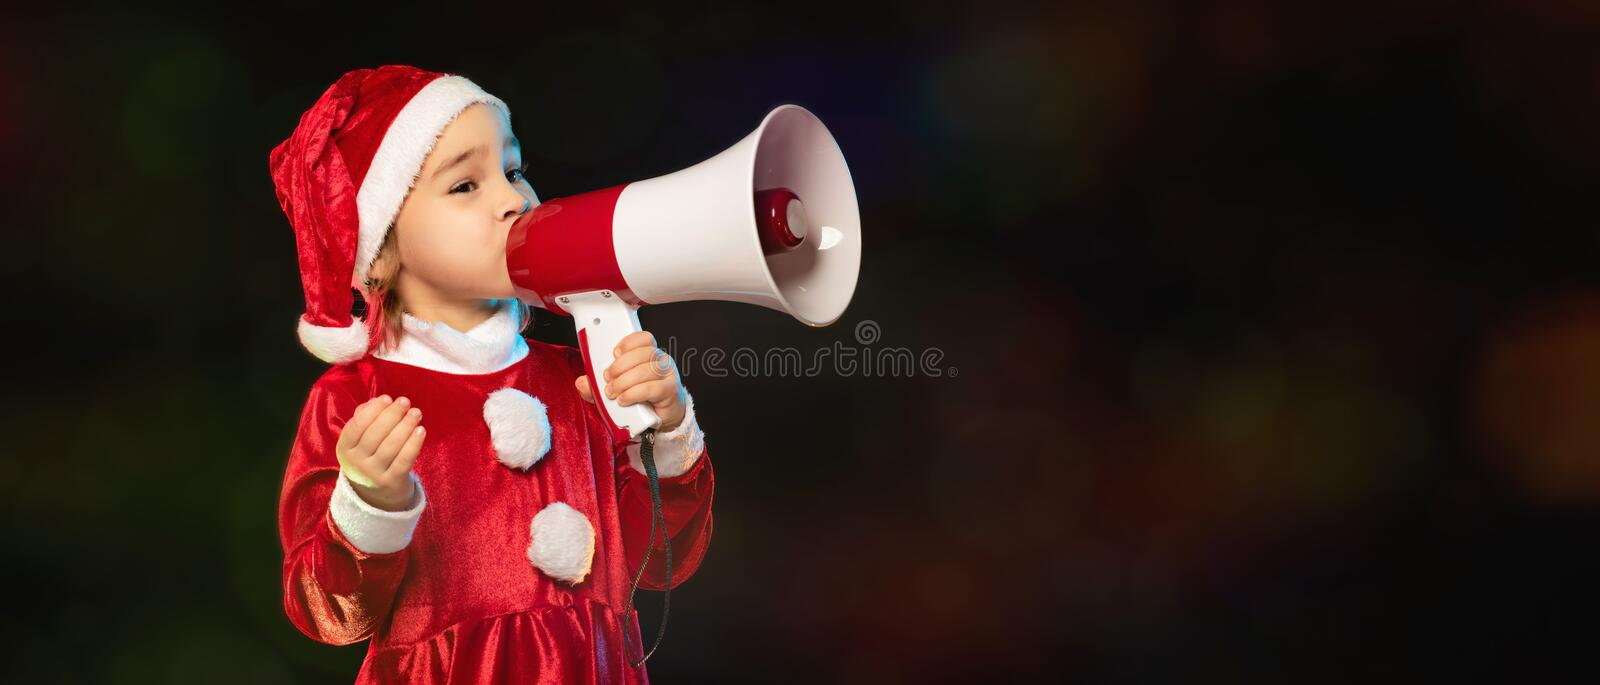 Portrait of Little Adorable Girl in Costume Holding Megaphone royalty free stock photography